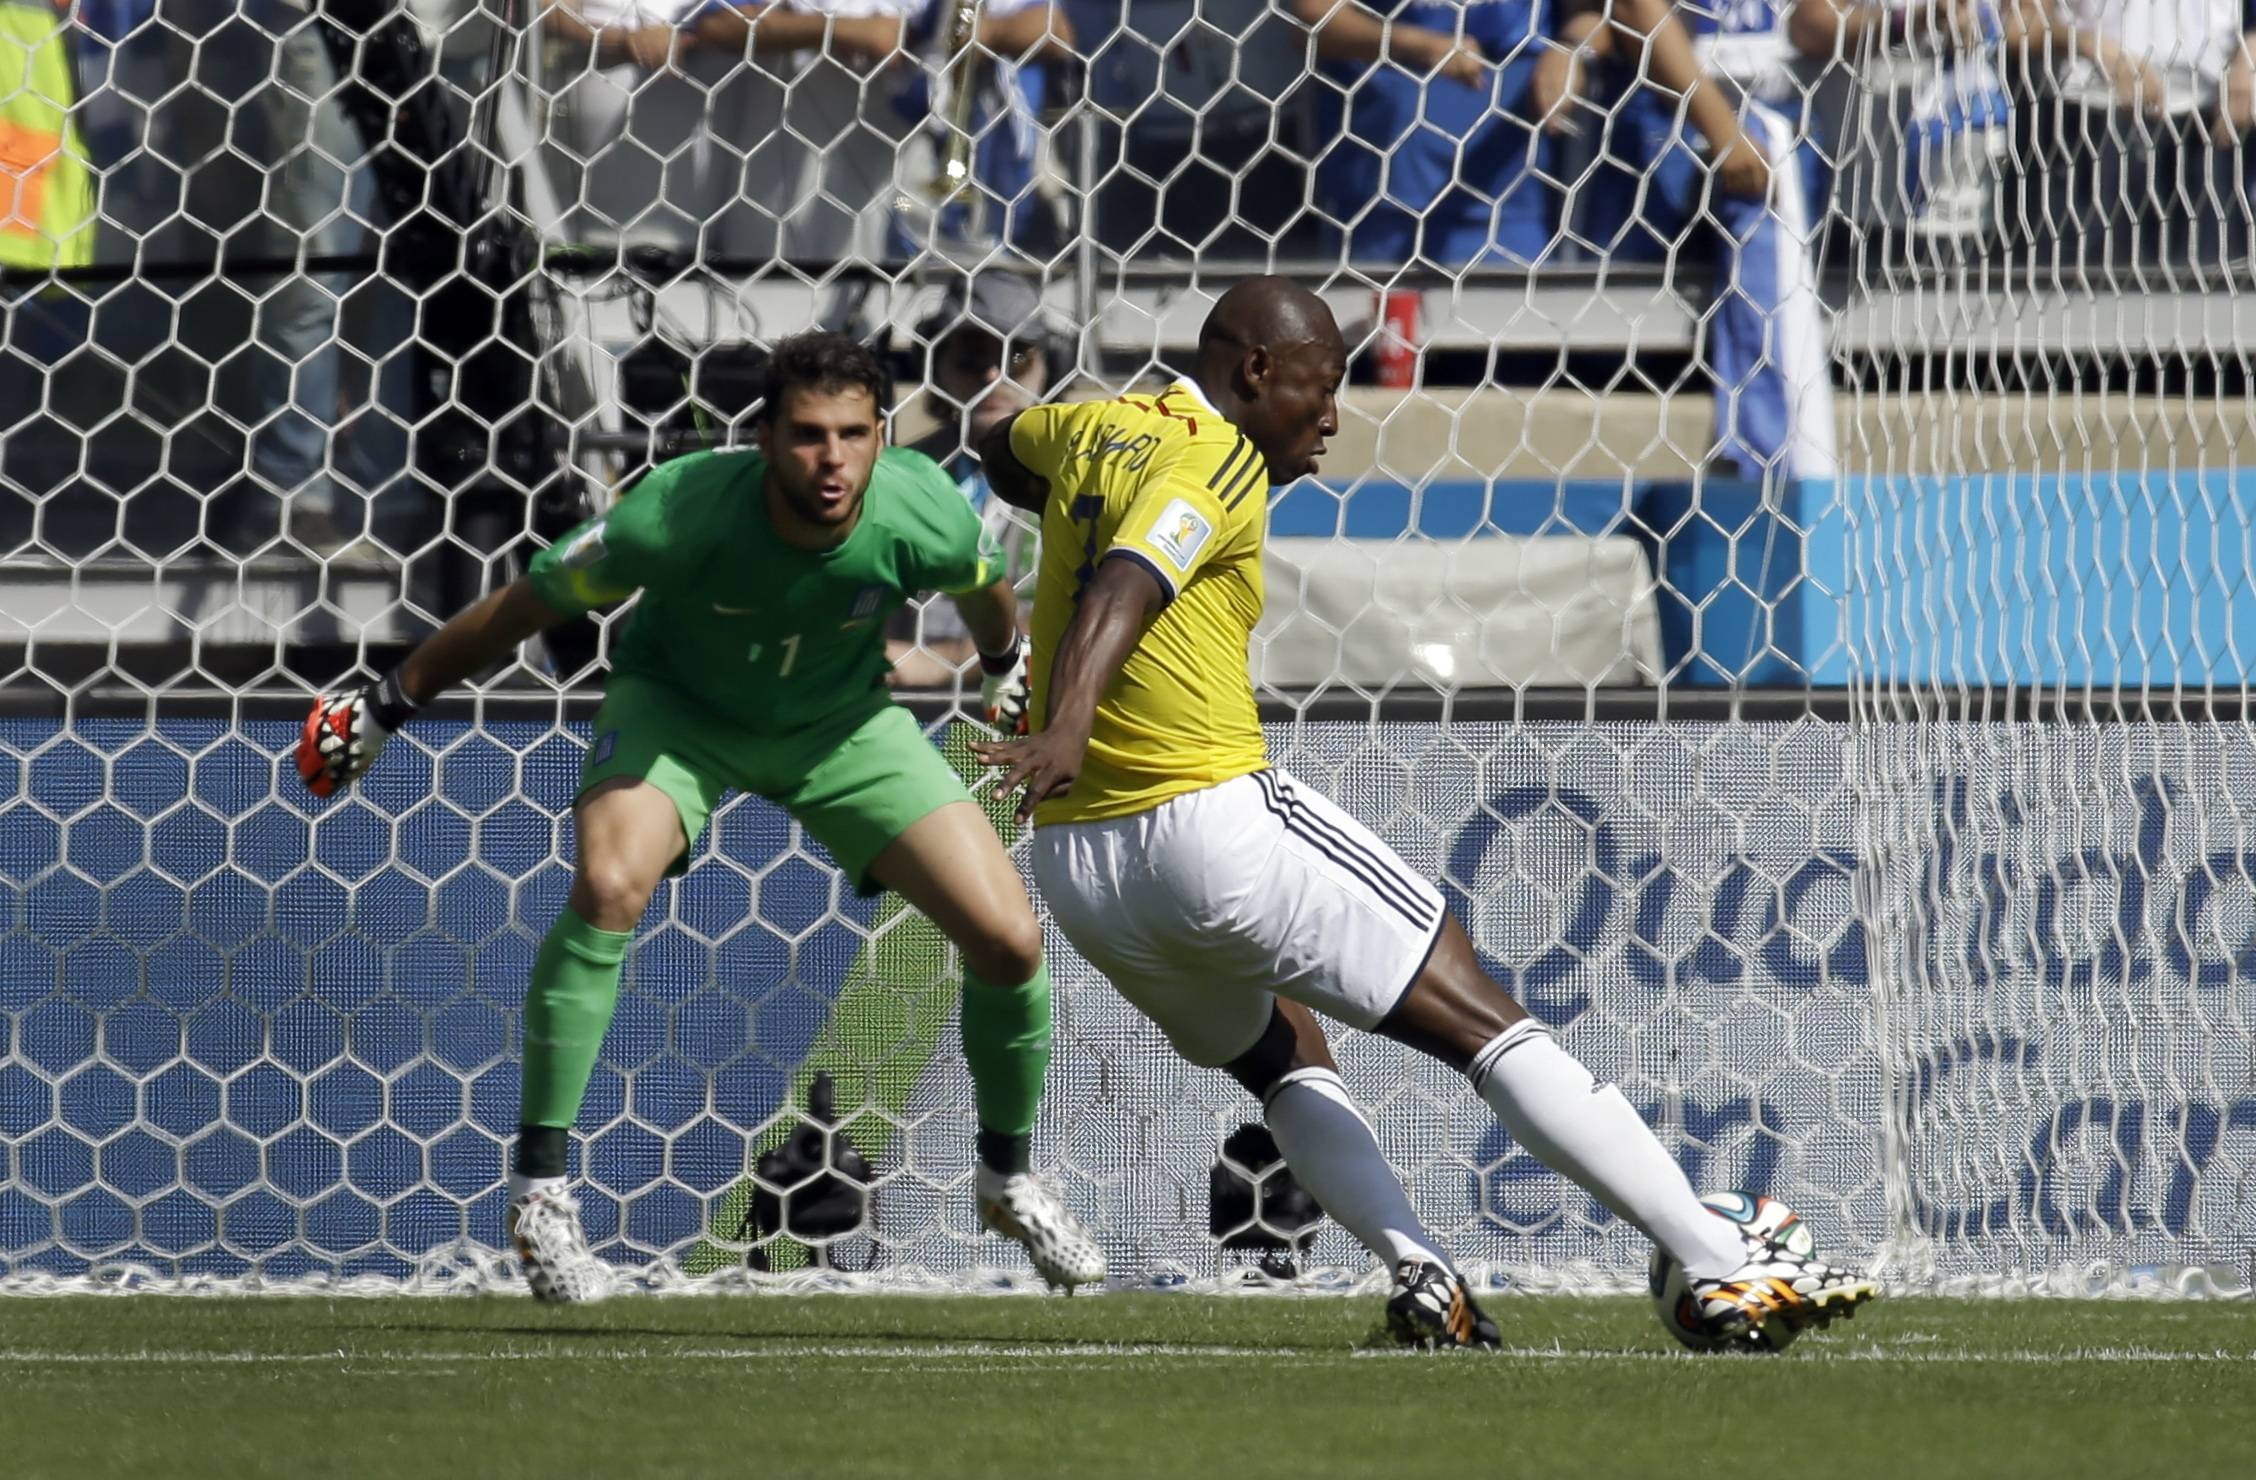 Colombia started its first World Cup campaign in 16 years in dazzling fashion, beating Greece 3-0 to open Group C on Saturday in front of a big, loud pro-Colombian crowd. Left back Armero opened the scoring in the fifth minute when his deflected shot rolled past Greece goalkeeper Orestis Karnezis. Striker Teofilo Gutierrez poked in Colombia's second goal from a deflected corner in the 58th and James Rodriguez capped it off with a low shot in stoppage time after a slick backheel flick from Juan Cuadrado.